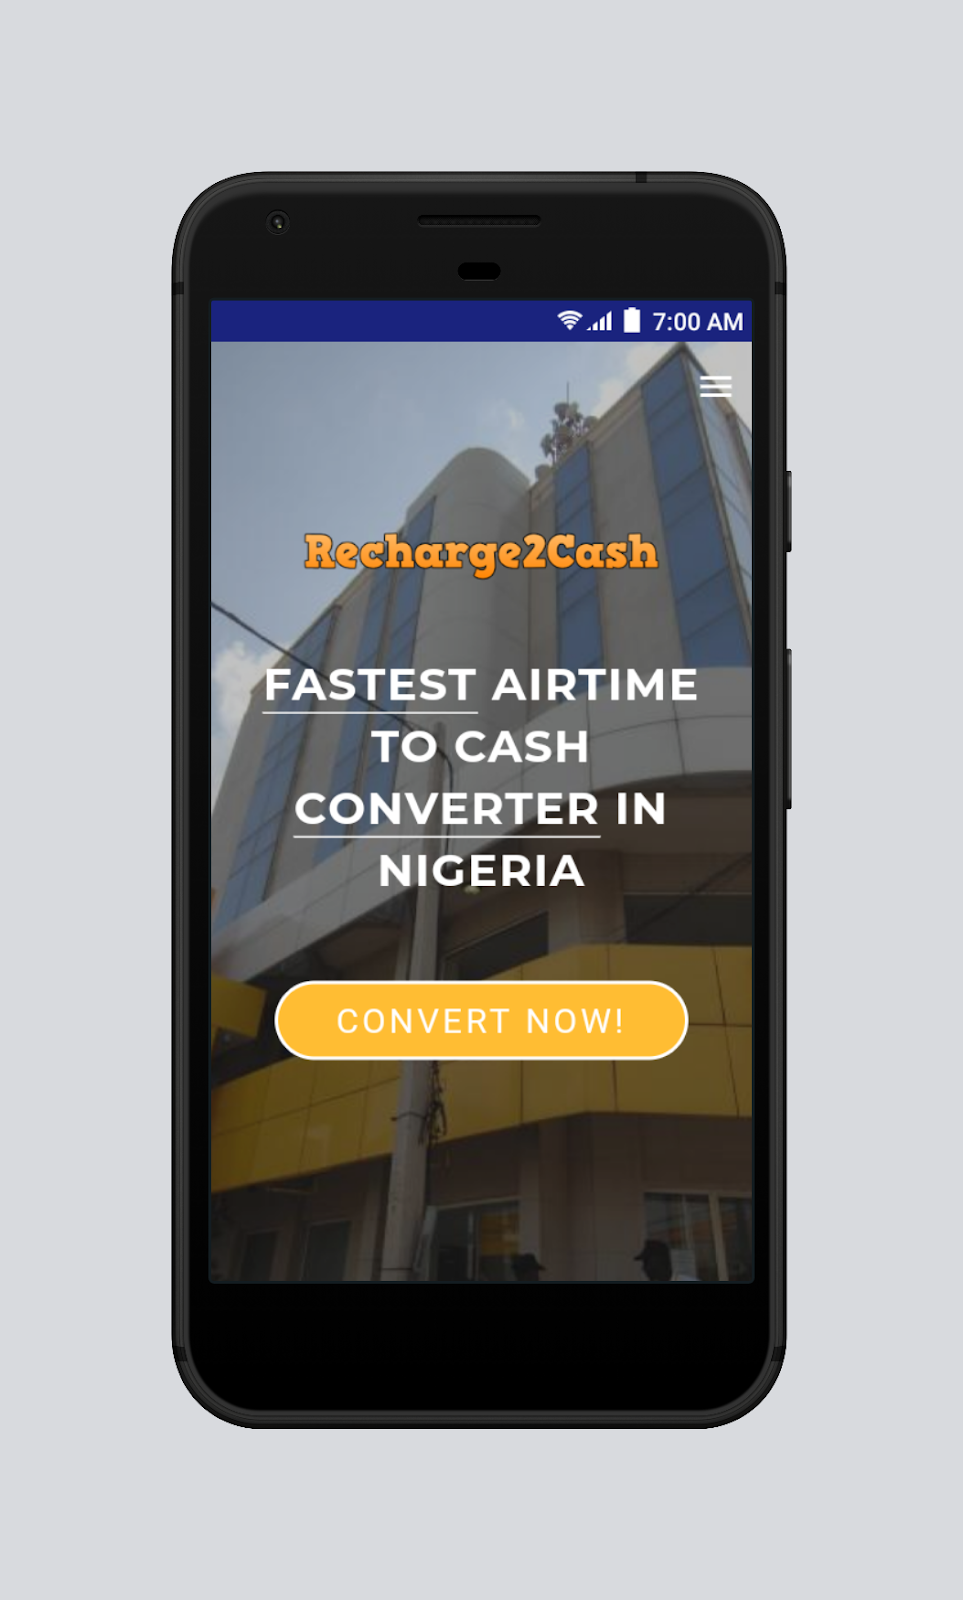 Recharge2Cash - Convert Airtime To Cash In Nigeria